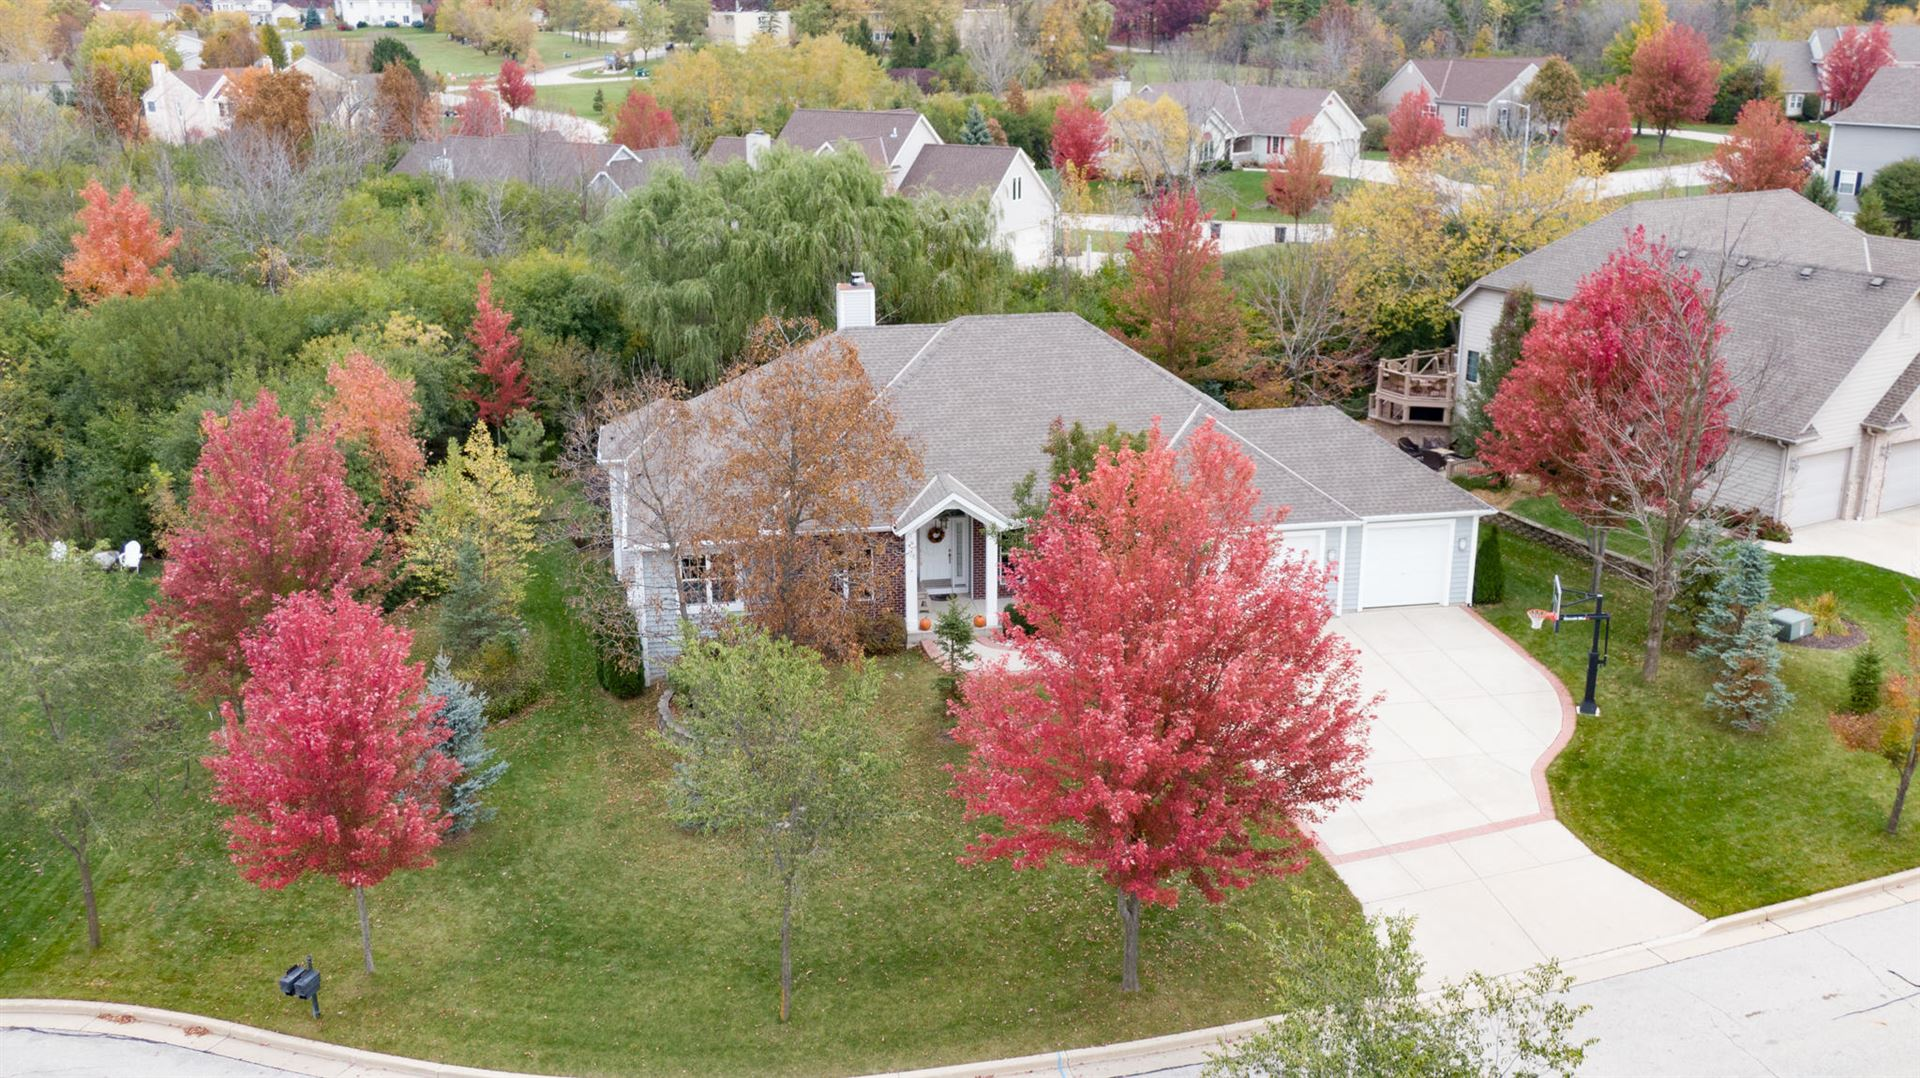 4630 W Alanna Ct, Franklin, WI 53132 - #: 1716236